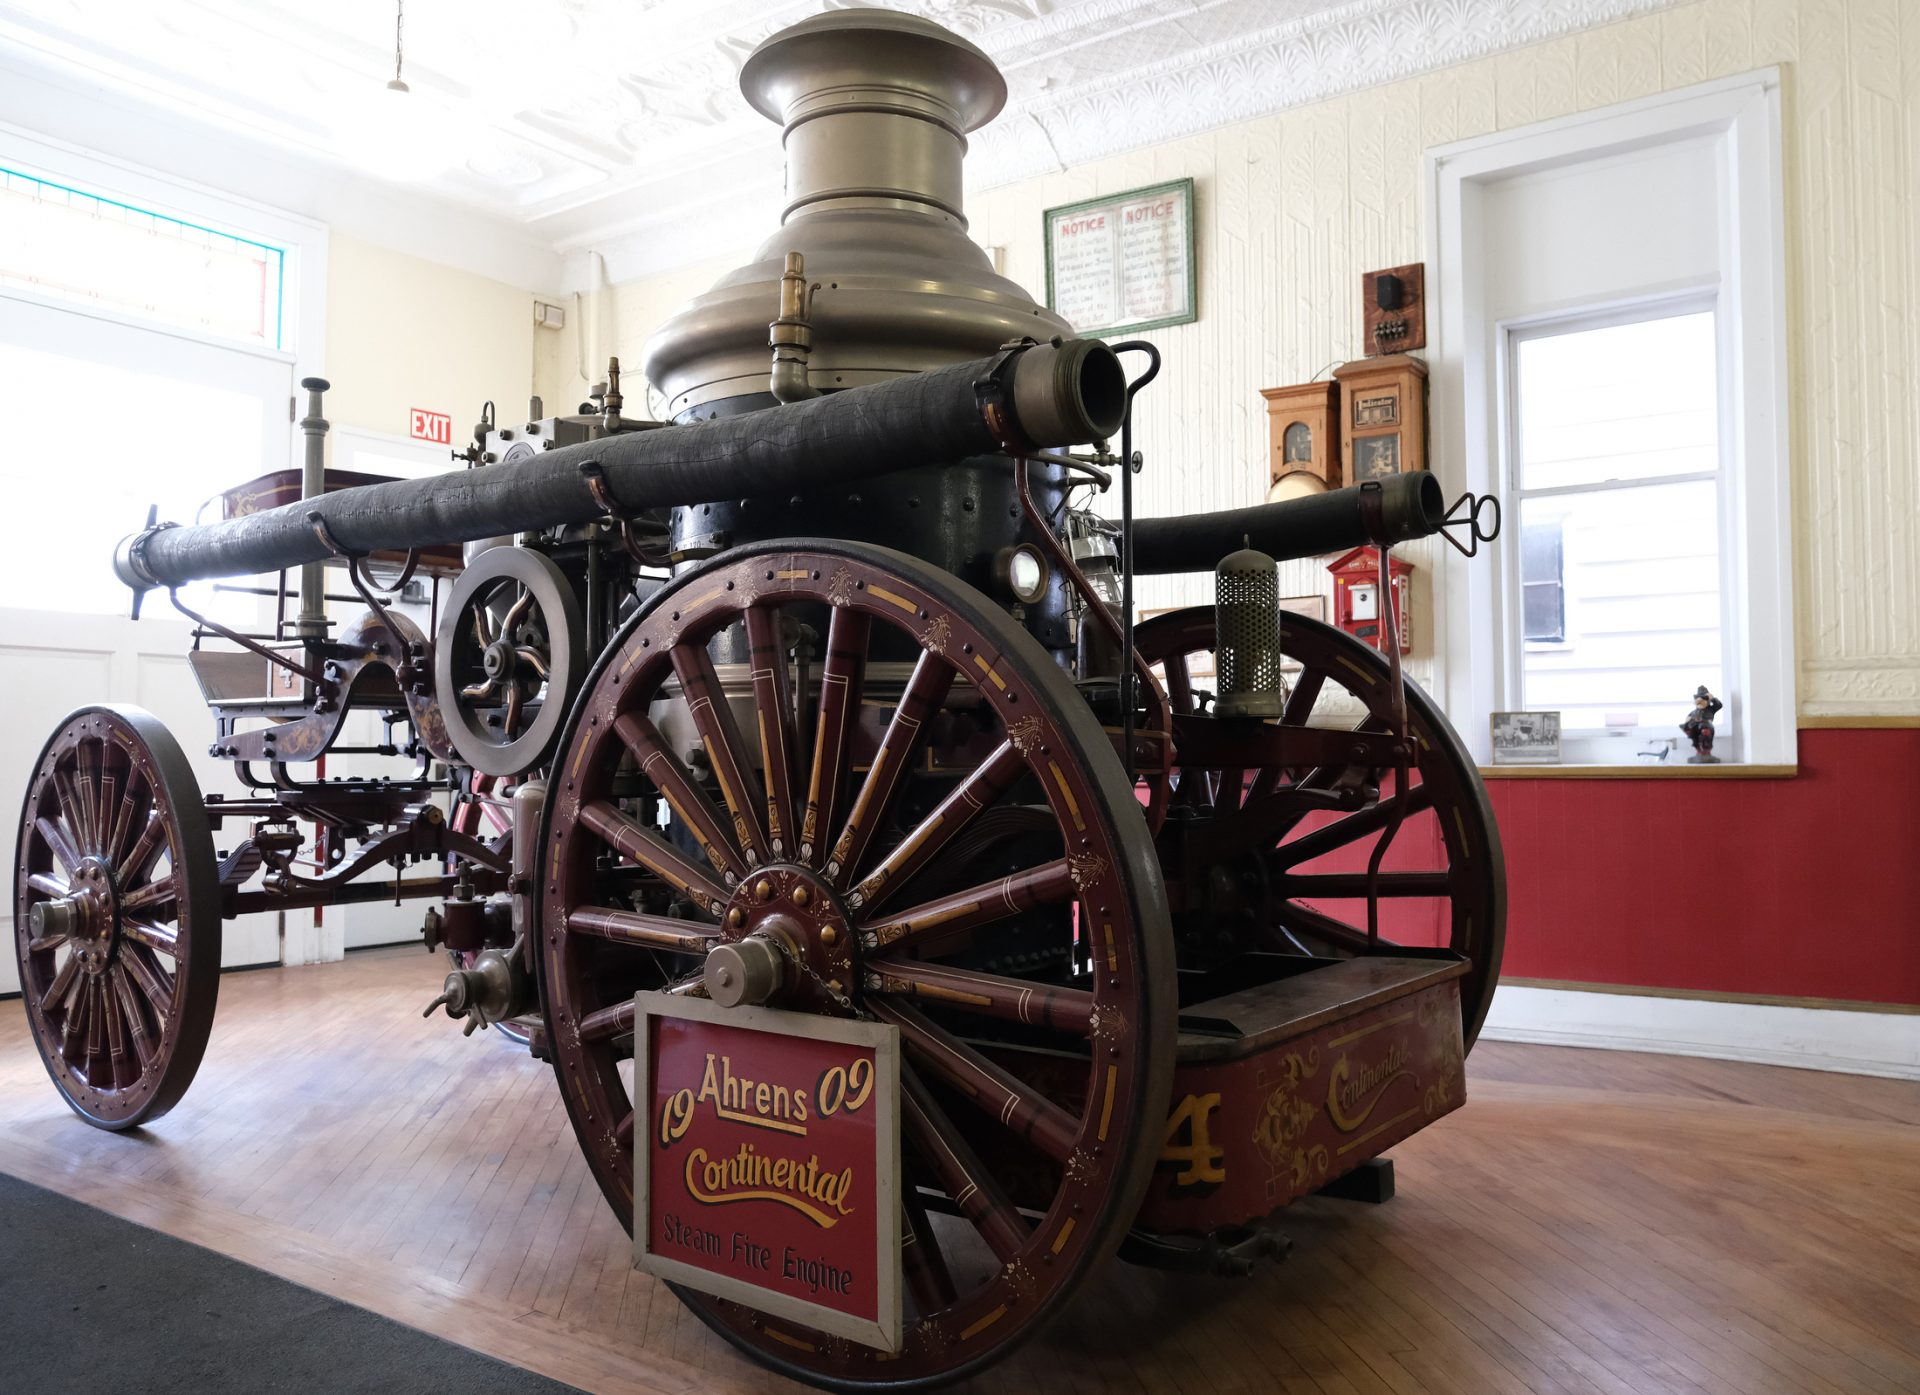 A 1909 Ahrens Continental steam fire engine is displayed Jan. 16, 2020, at the Schuylkill Historical Fire Society in Shenandoah, Pennsylvania.